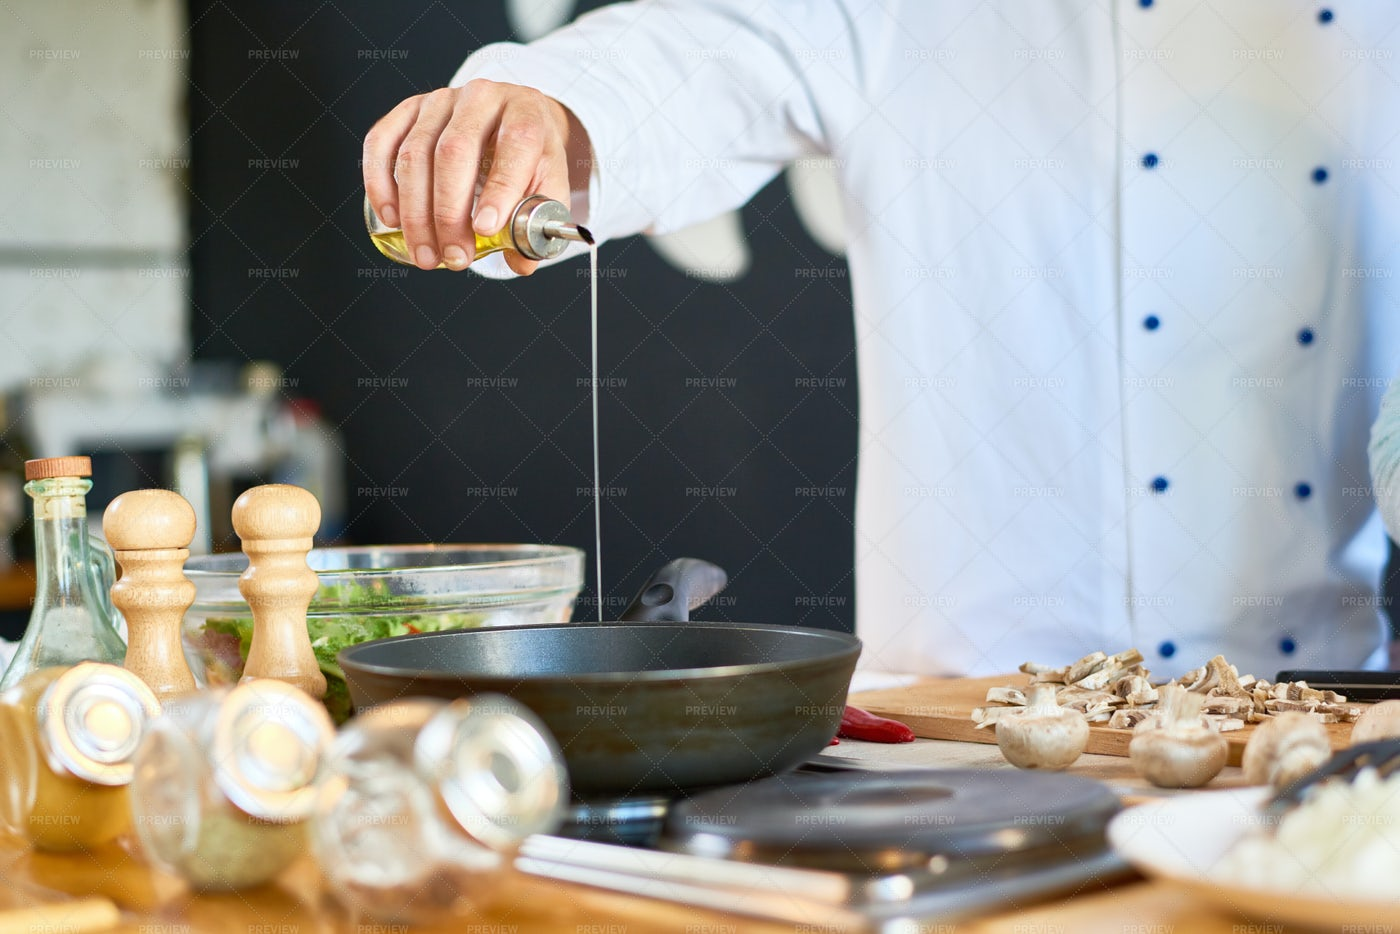 Unrecognizable Chef Frying...: Stock Photos